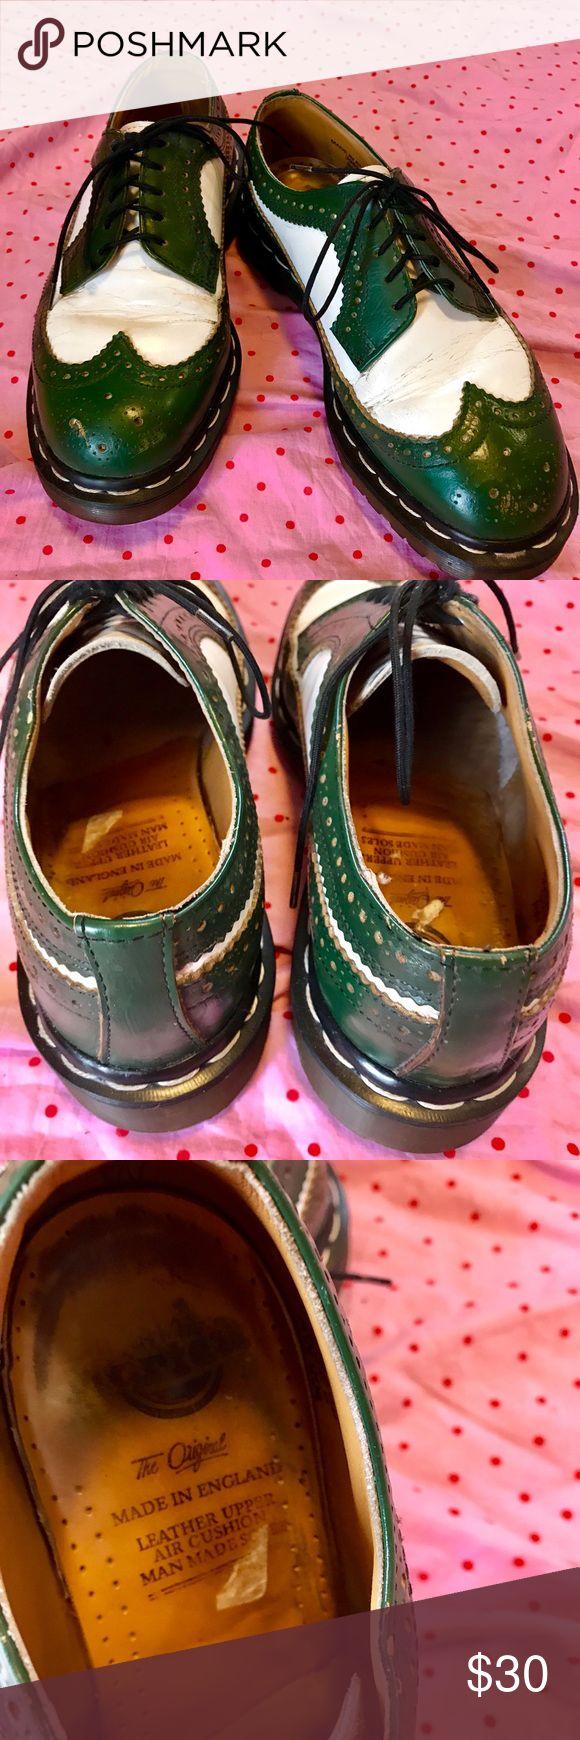 Doc Martin's Oxford Vintage Wingtips, US size 8. Super-awesome green and white oxford wingtips, from Doc Martins.   True vintage, so there are a few expected scuffs here and there (see pics). Frankly I like a bit of wear and softening around the edges on my Doc's.   I'm rePoshing these cuties because they're a true size 8 US (UK 6), and, alas, I'm a 7. Doc Martins Shoes Flats & Loafers